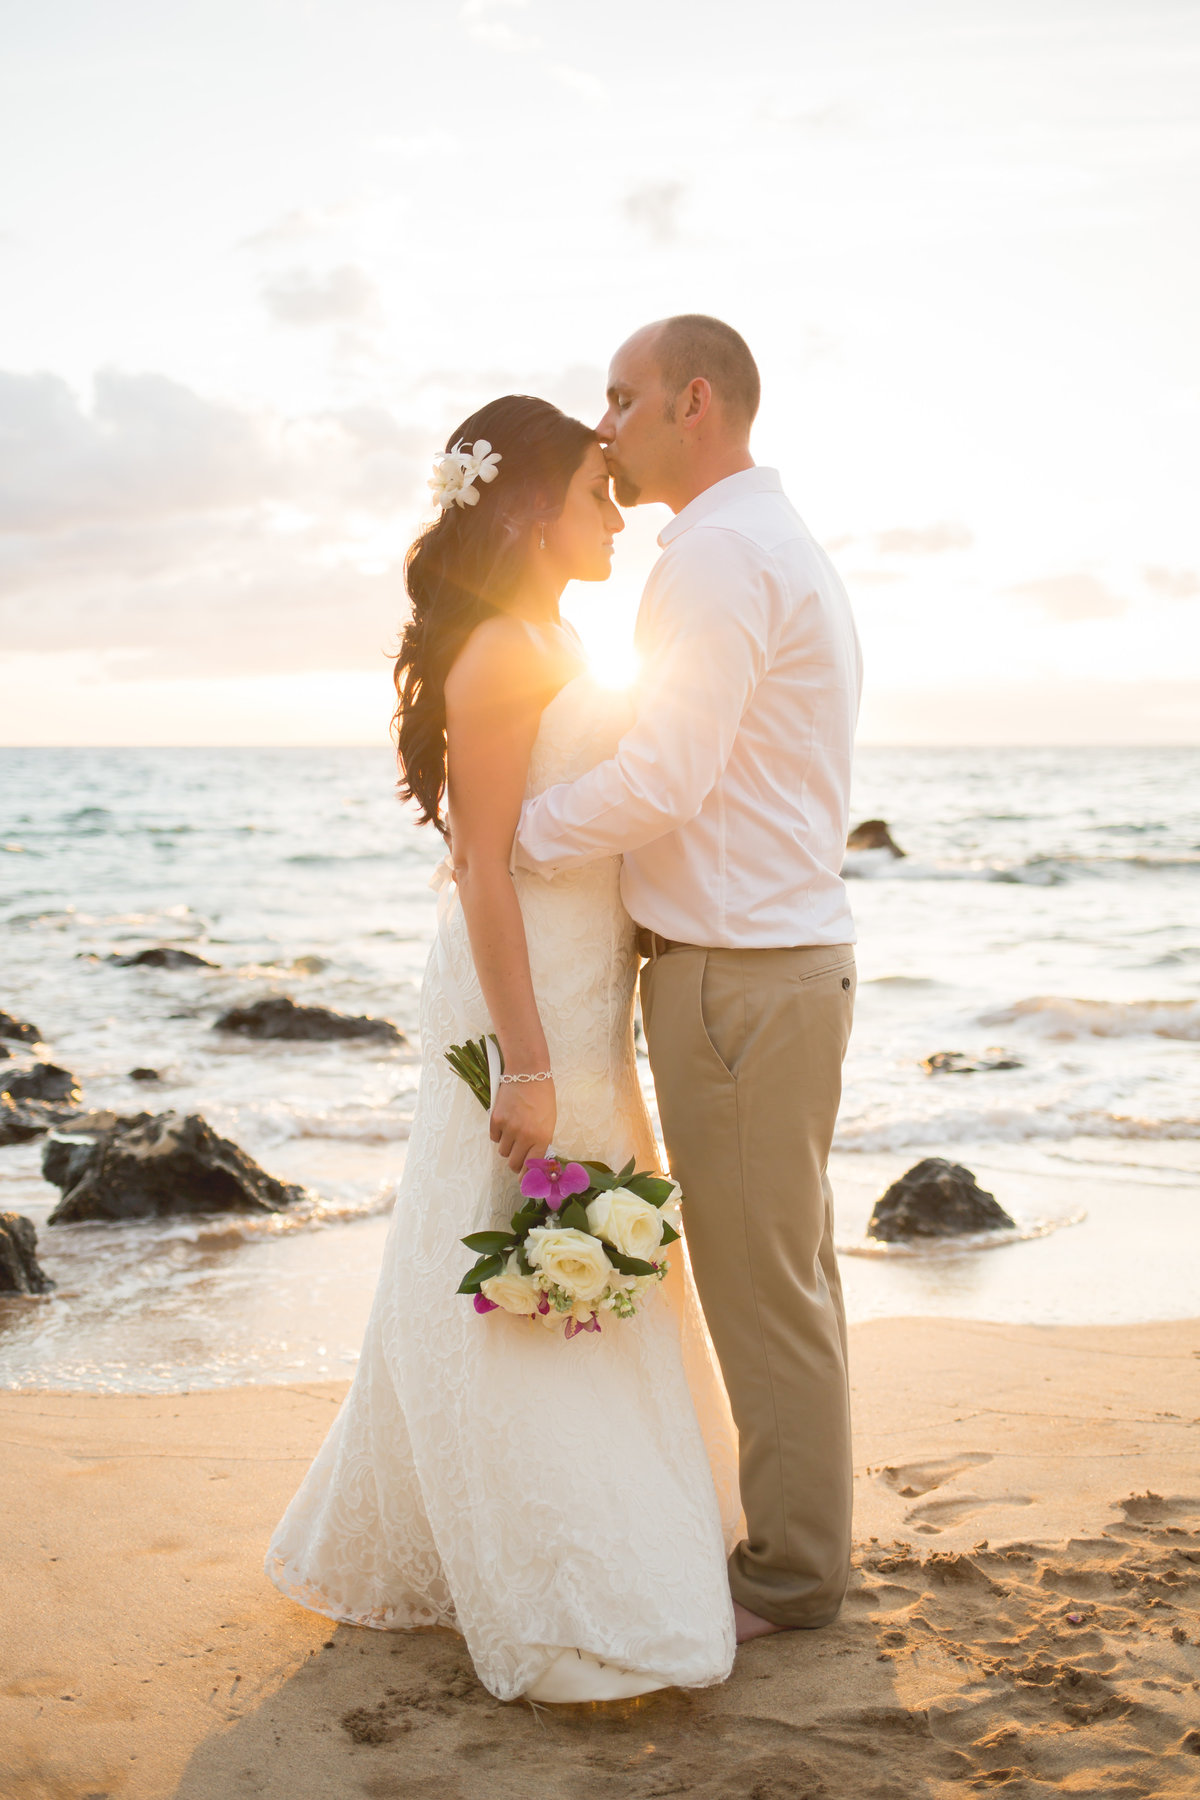 Wedding Photographer in Maui, Hawaii